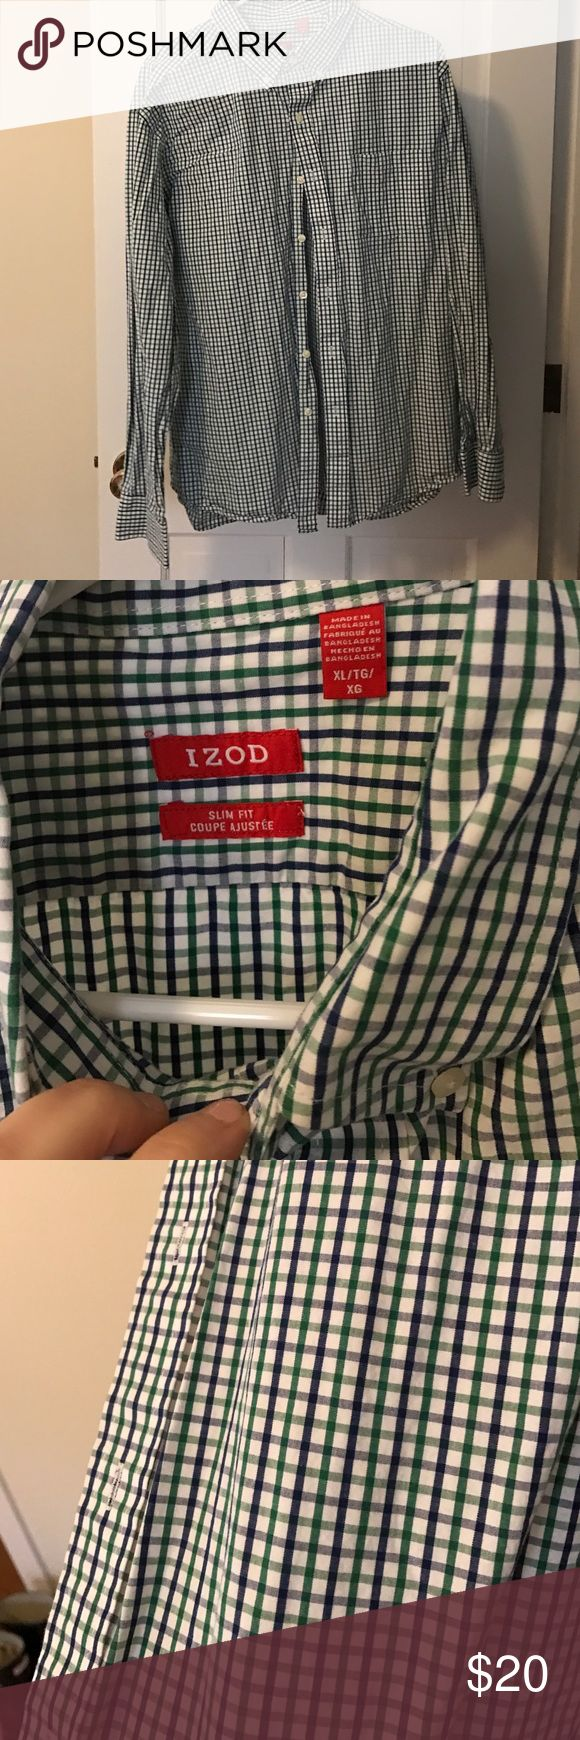 Izod blue and green shirt I am cleaning out my husbands closet. He has more than 50 shirts from JCrew that we are going through. All are XLARGE and in great condition. Please consider bundling to save. Please msg for more info. Izod Shirts